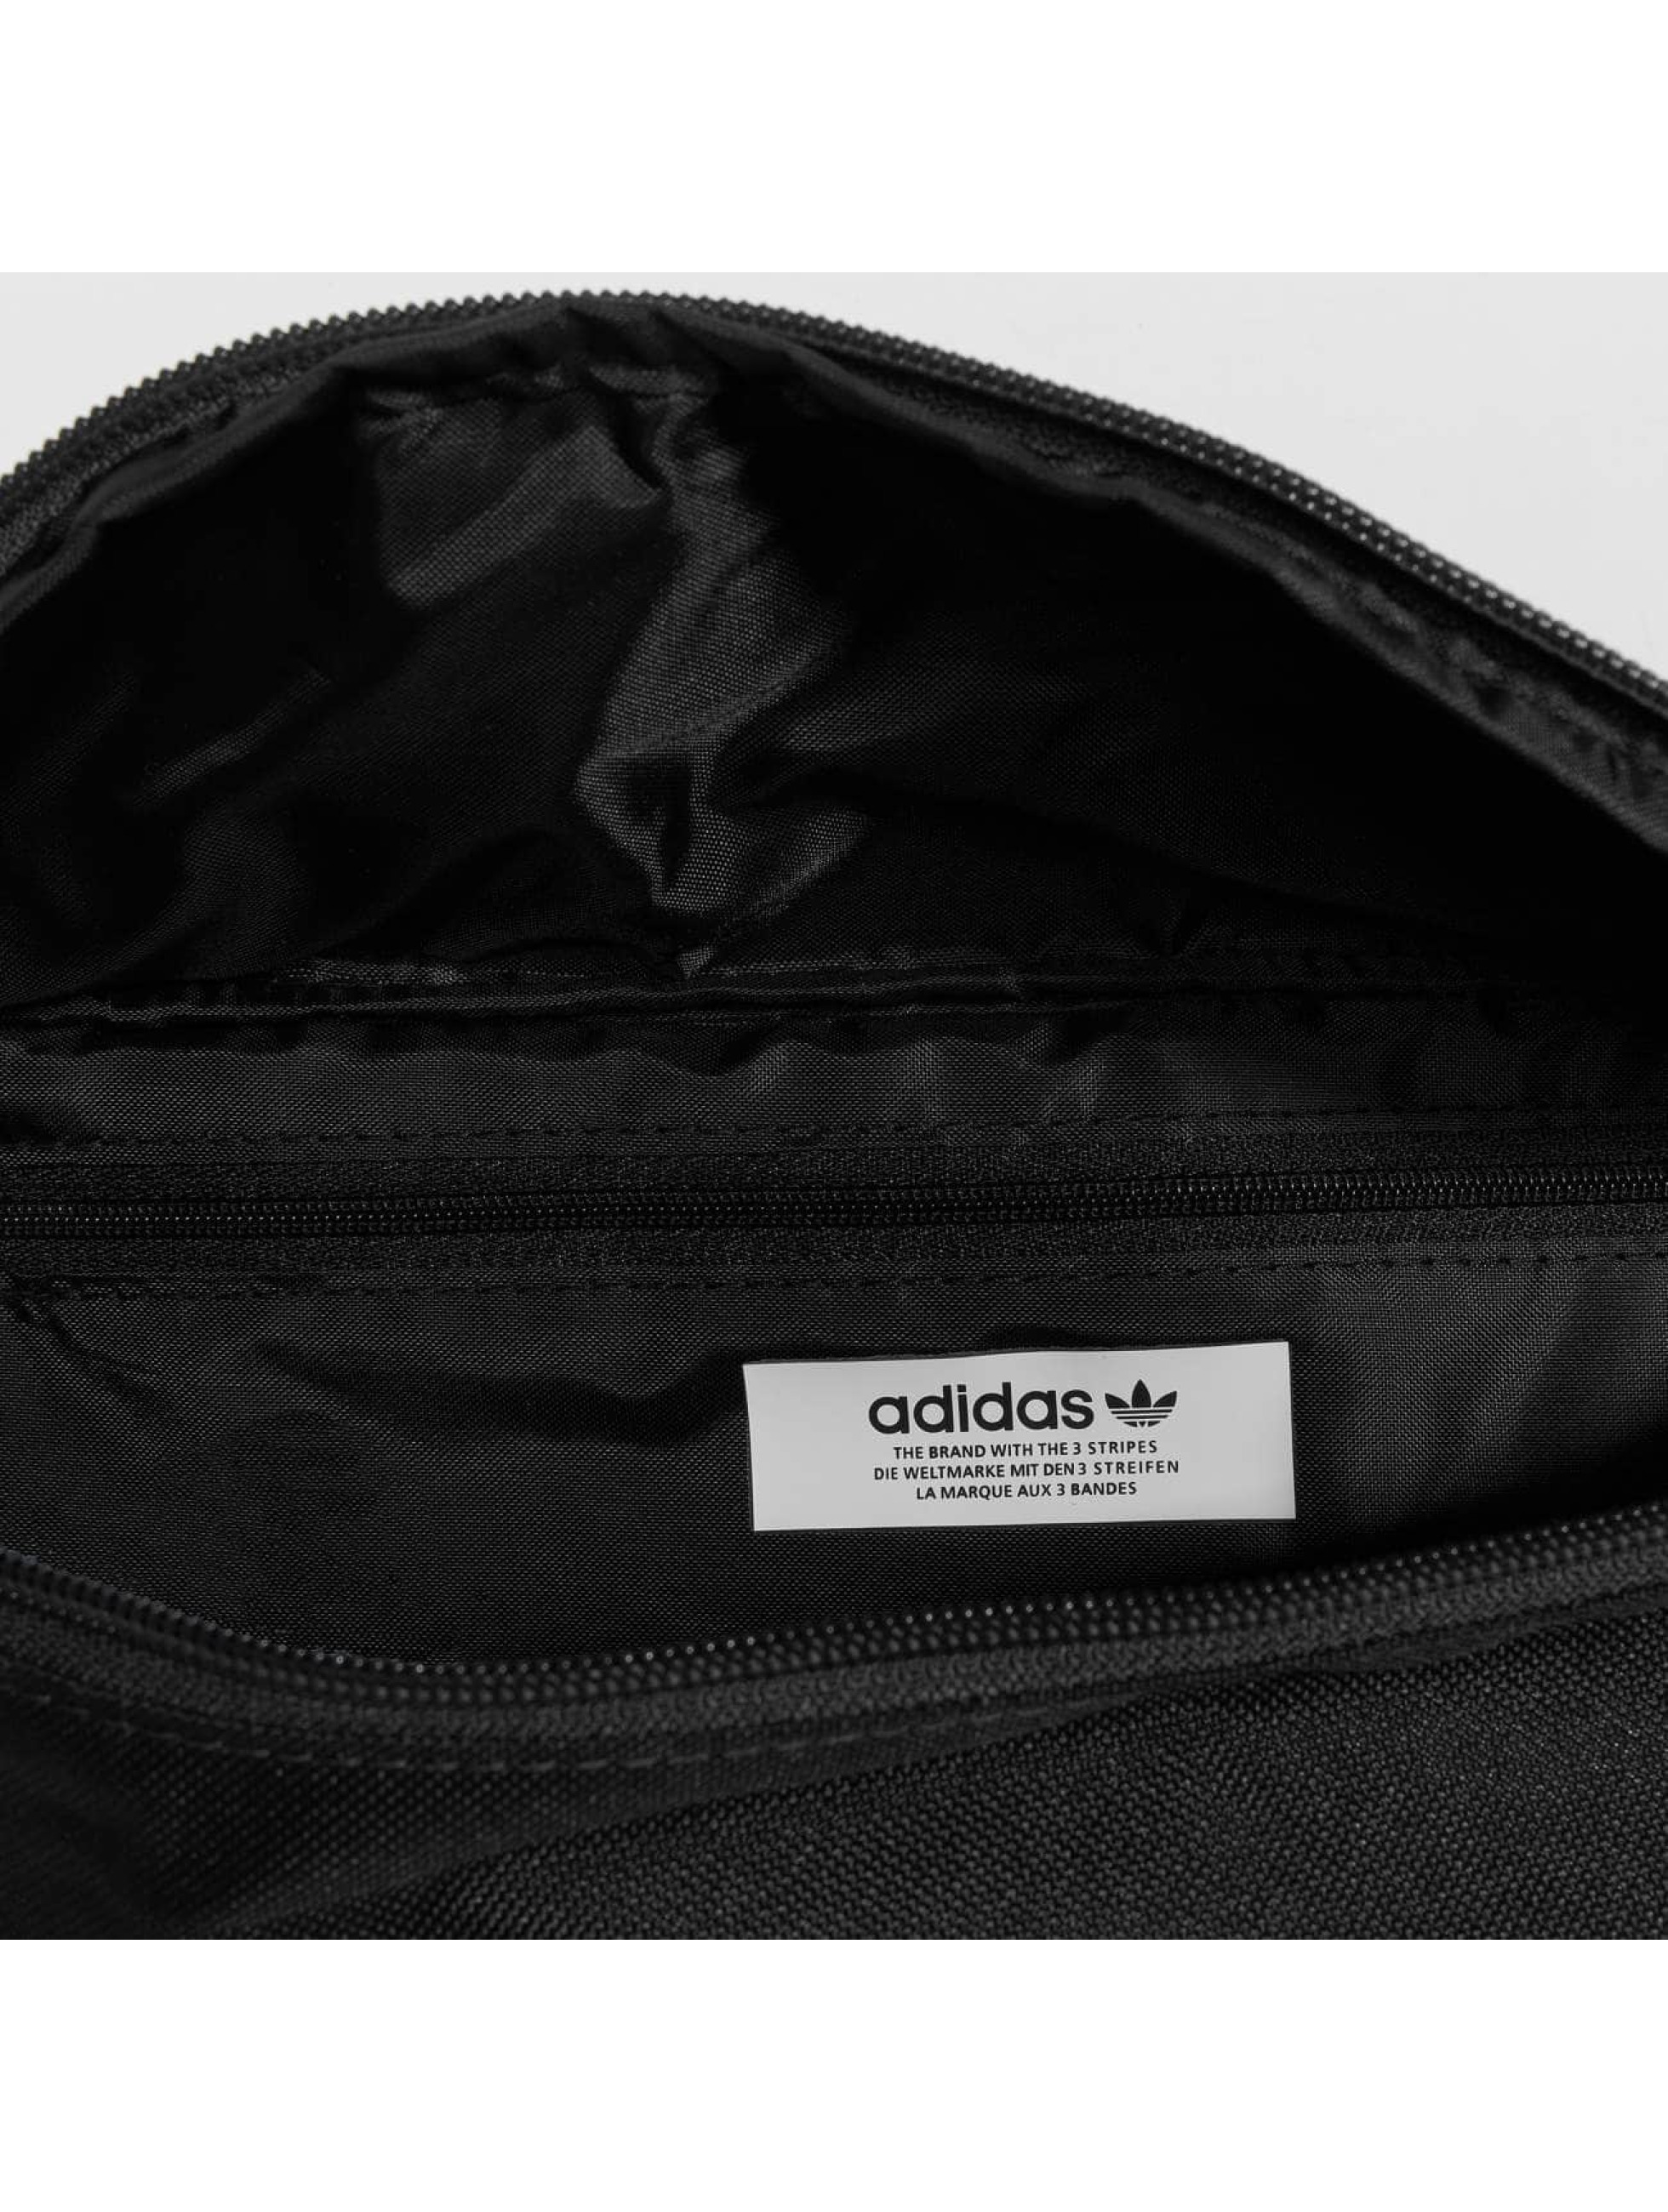 adidas originals Bag Basic grey